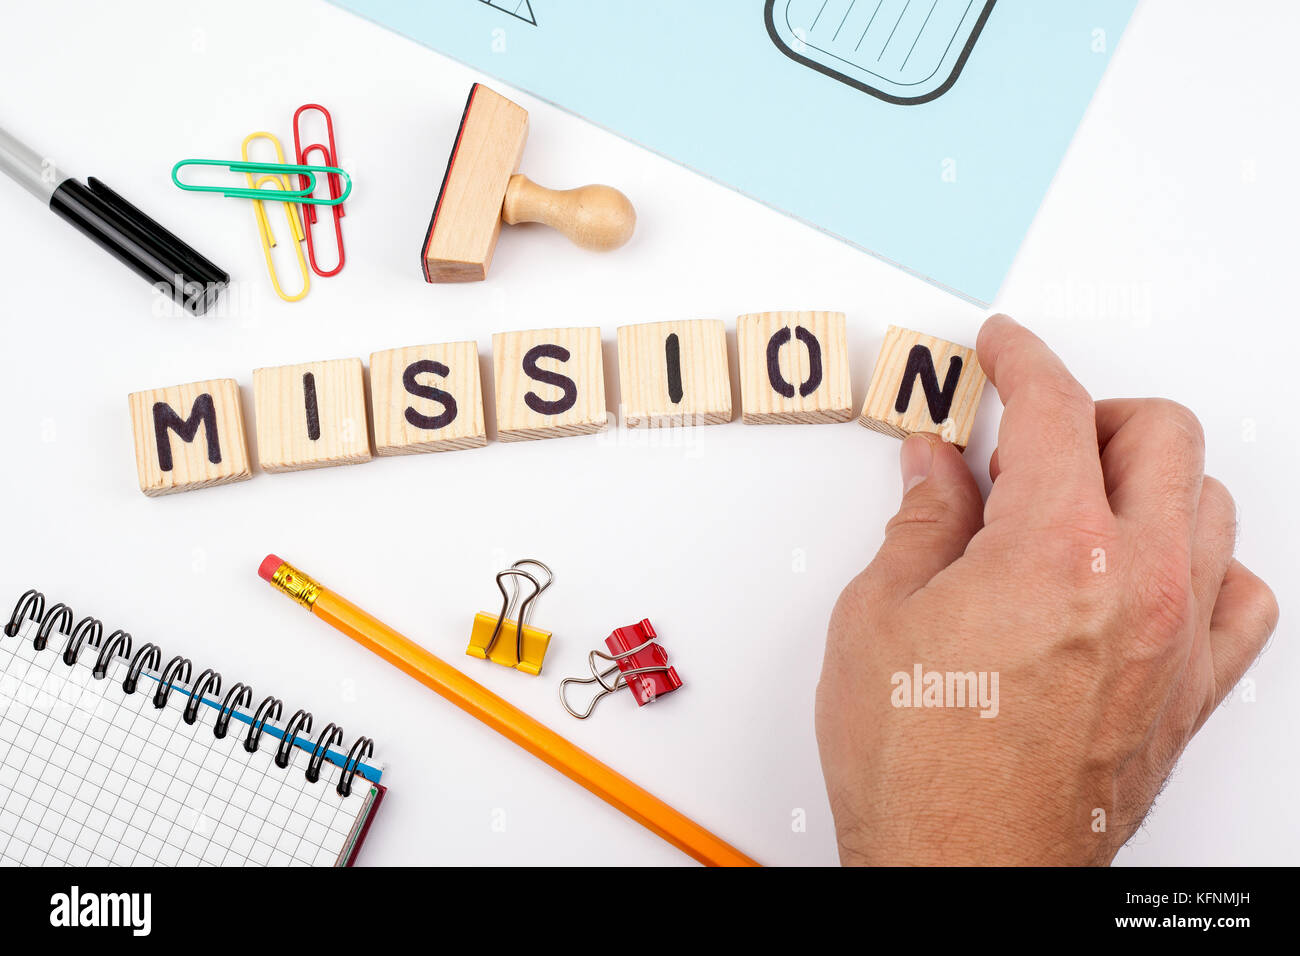 mission concept. Wooden letters on a white background - Stock Image